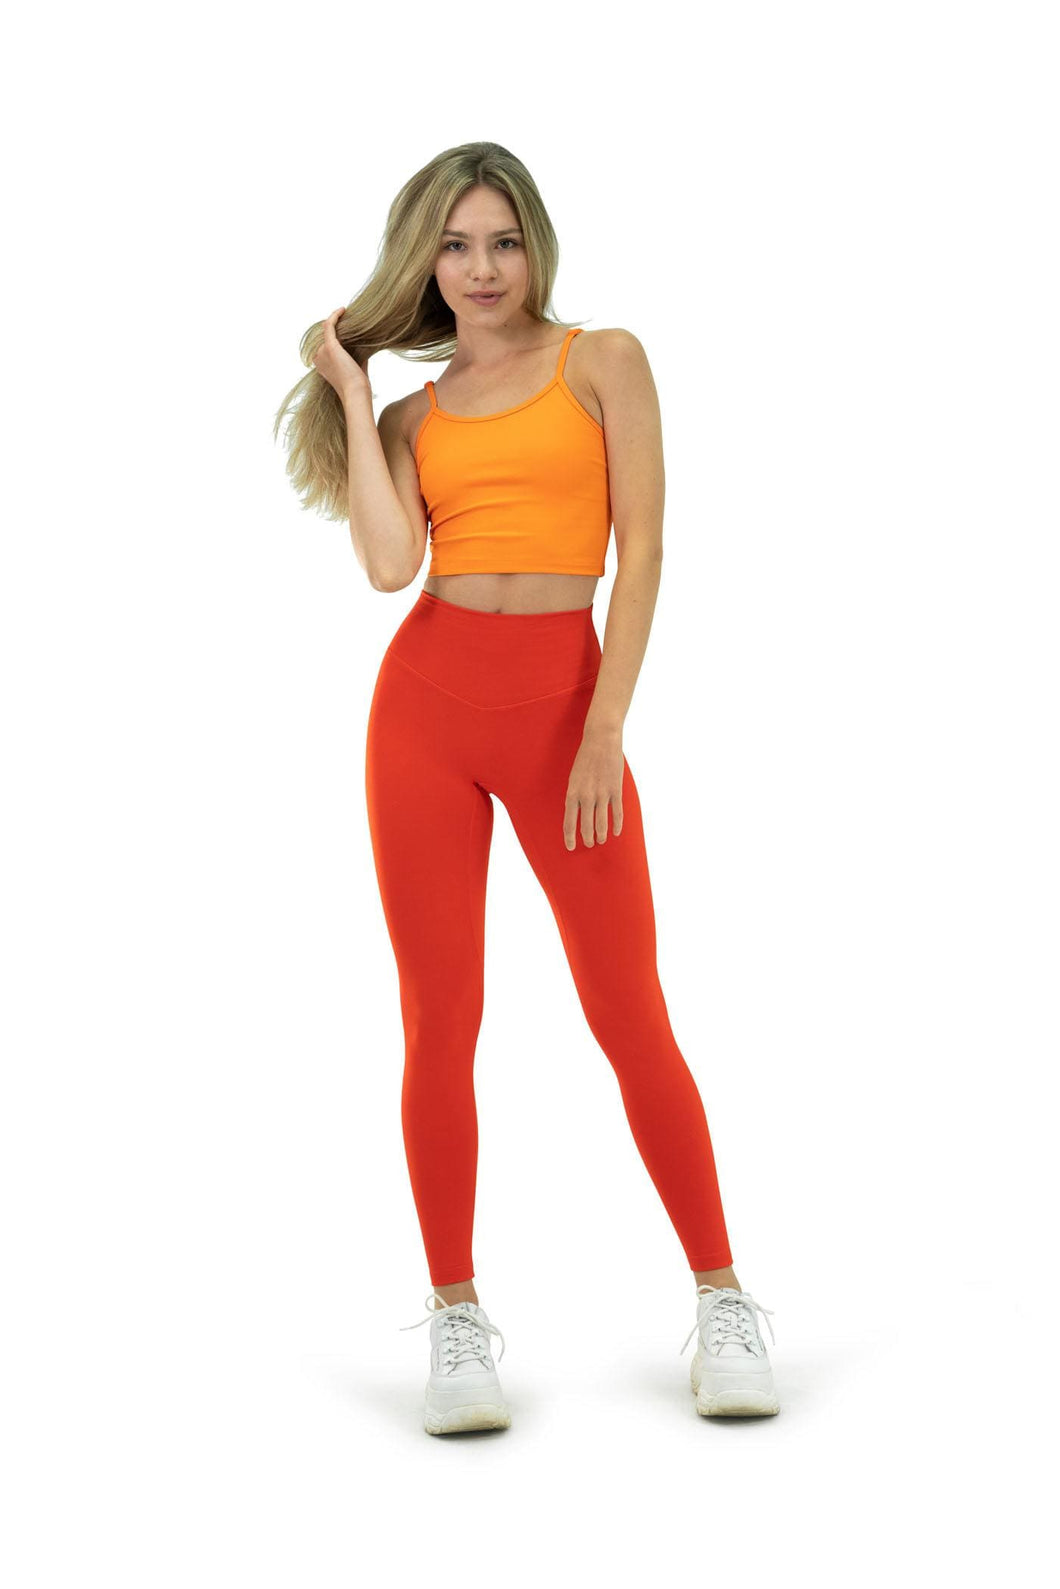 Balance Athletica Bottoms The Select Pant - Blood Orange